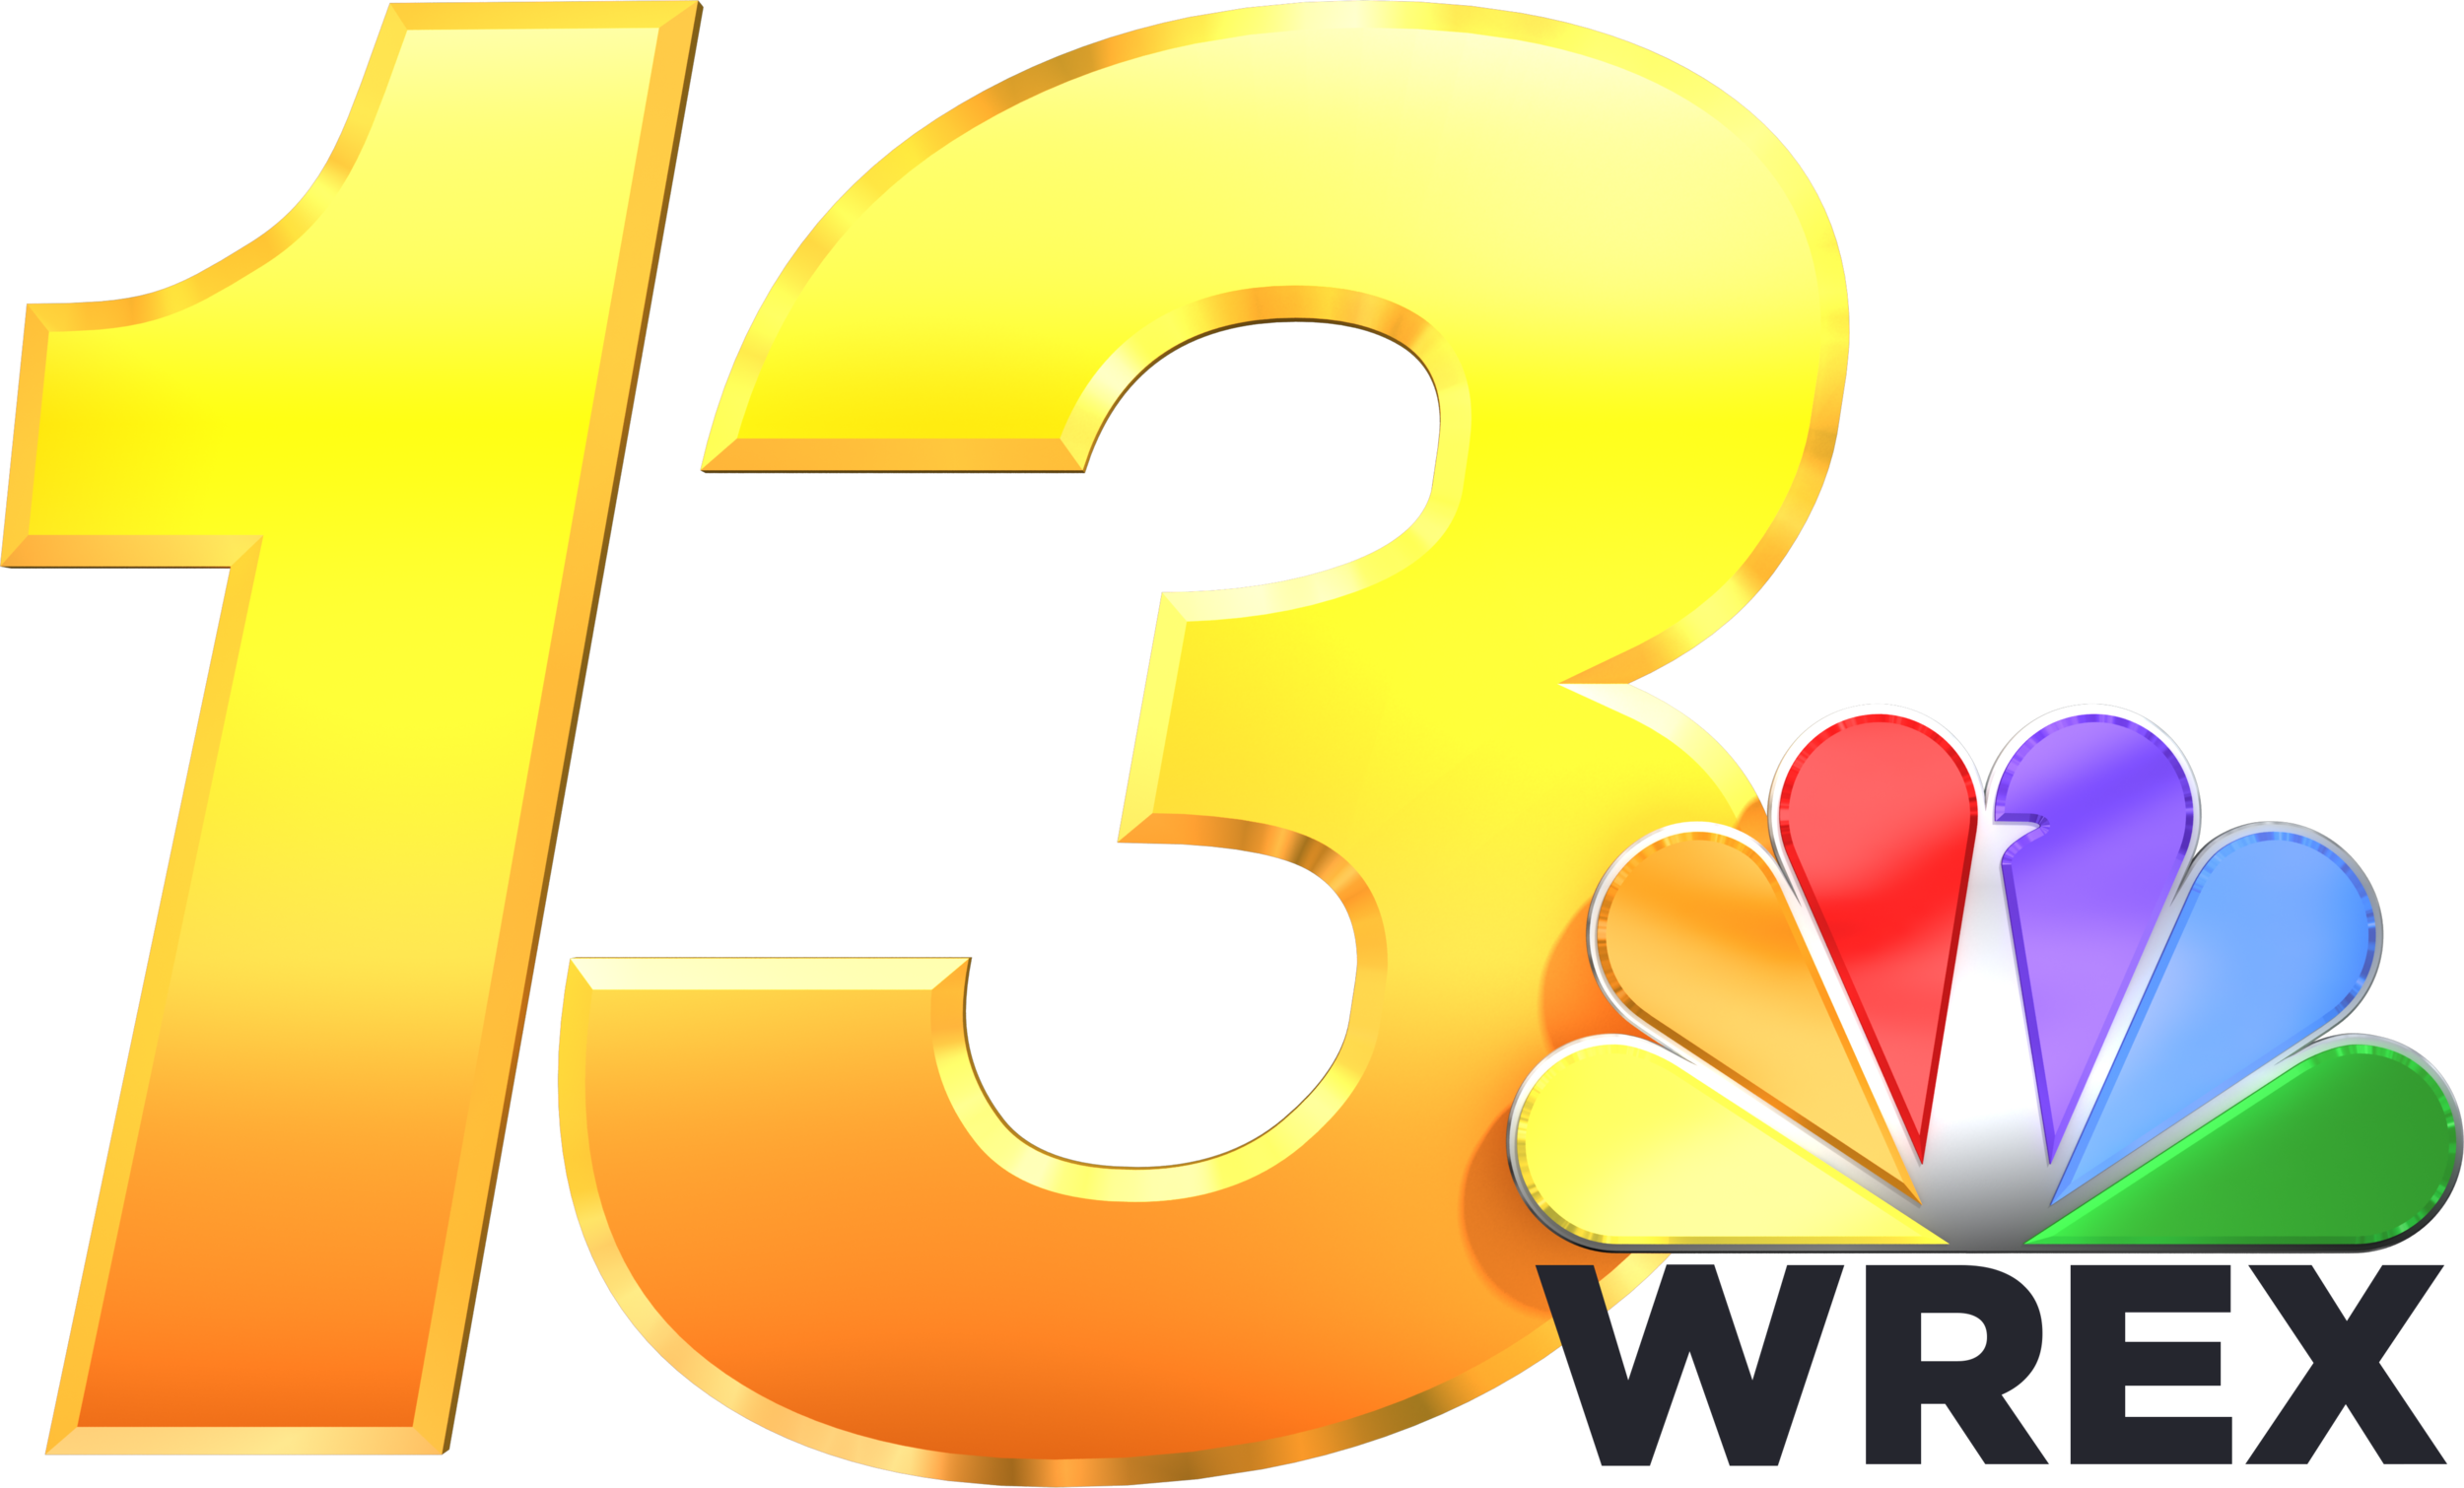 13WREX_Black Call Letters 2016-Logo.png